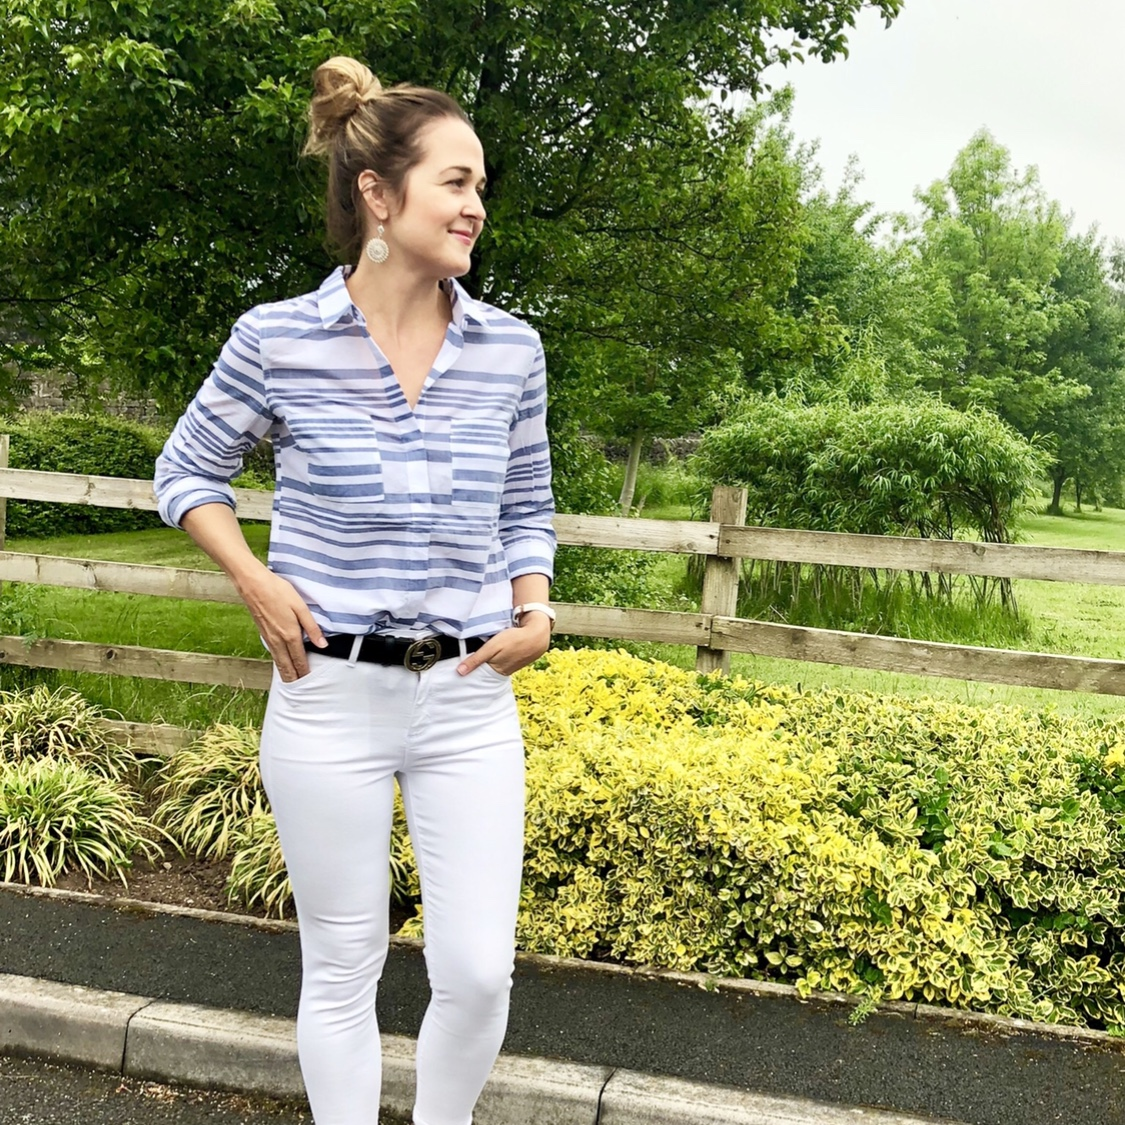 Rebecca Denise wearing Oasis Blue and White Stripe Shirt